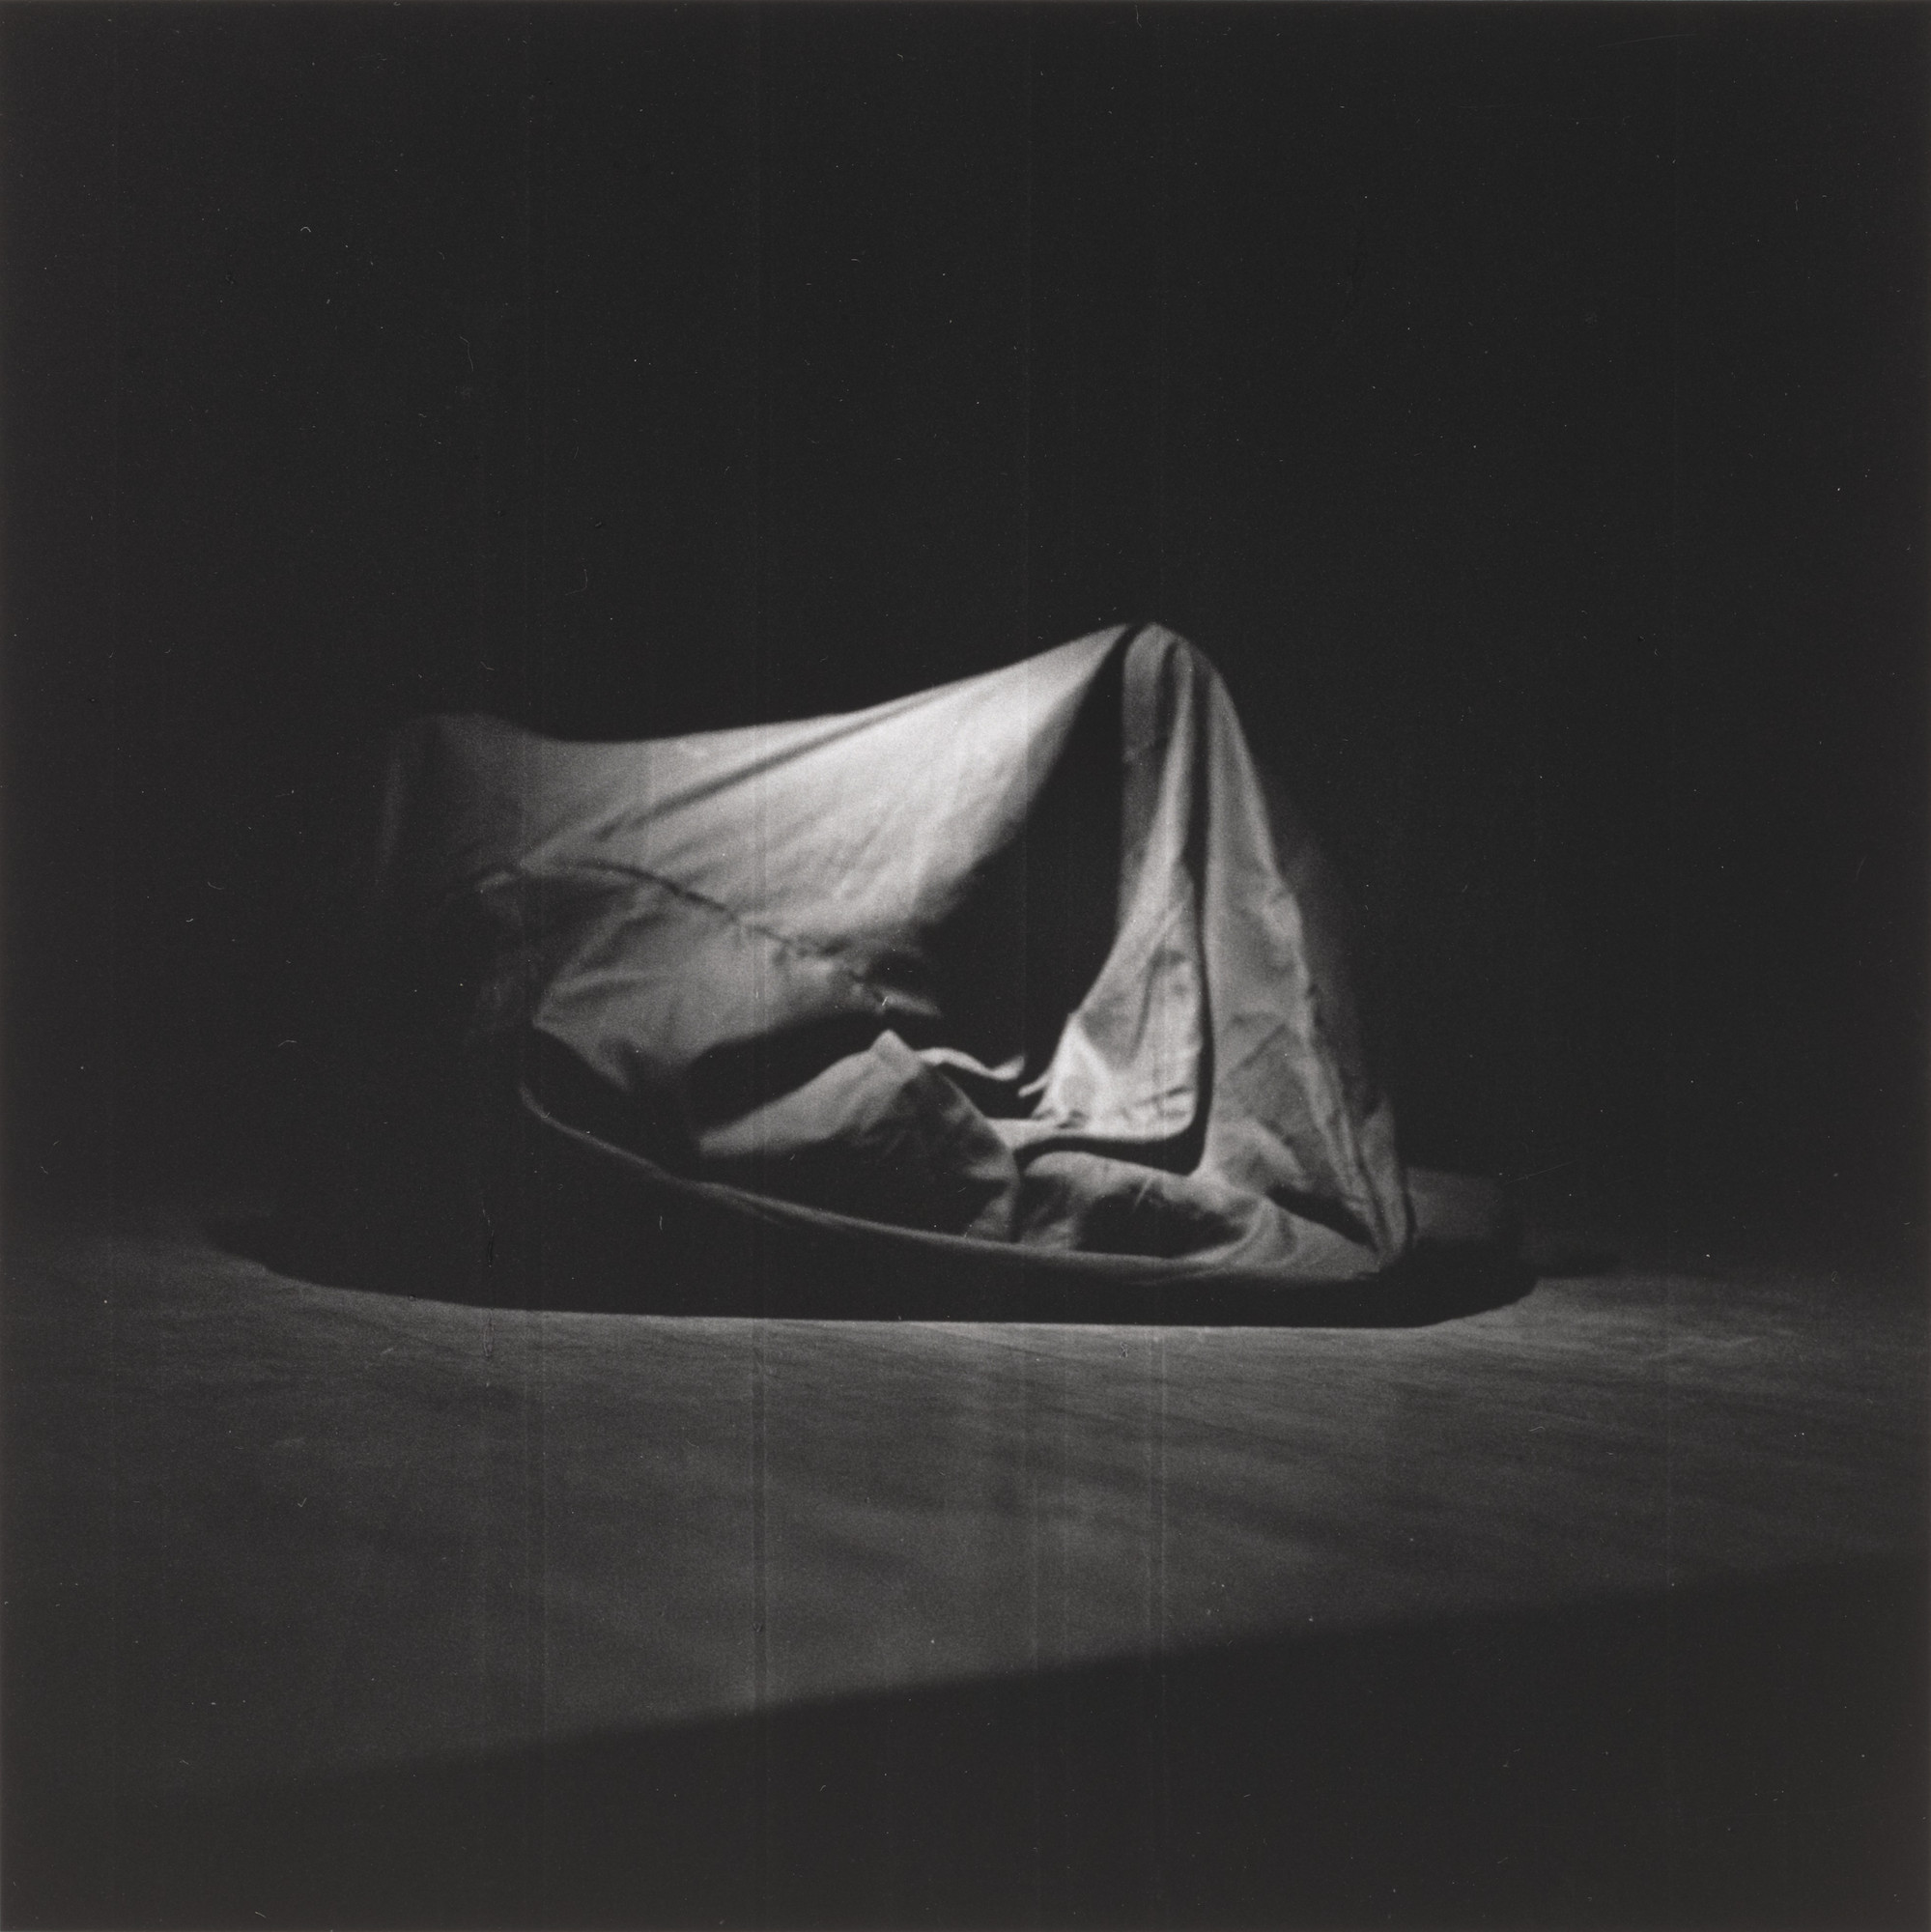 Yoko Ono. Bag Piece (1964), performed during Perpetual Fluxfest, Cinematheque, New York, June 27, 1965. 1965